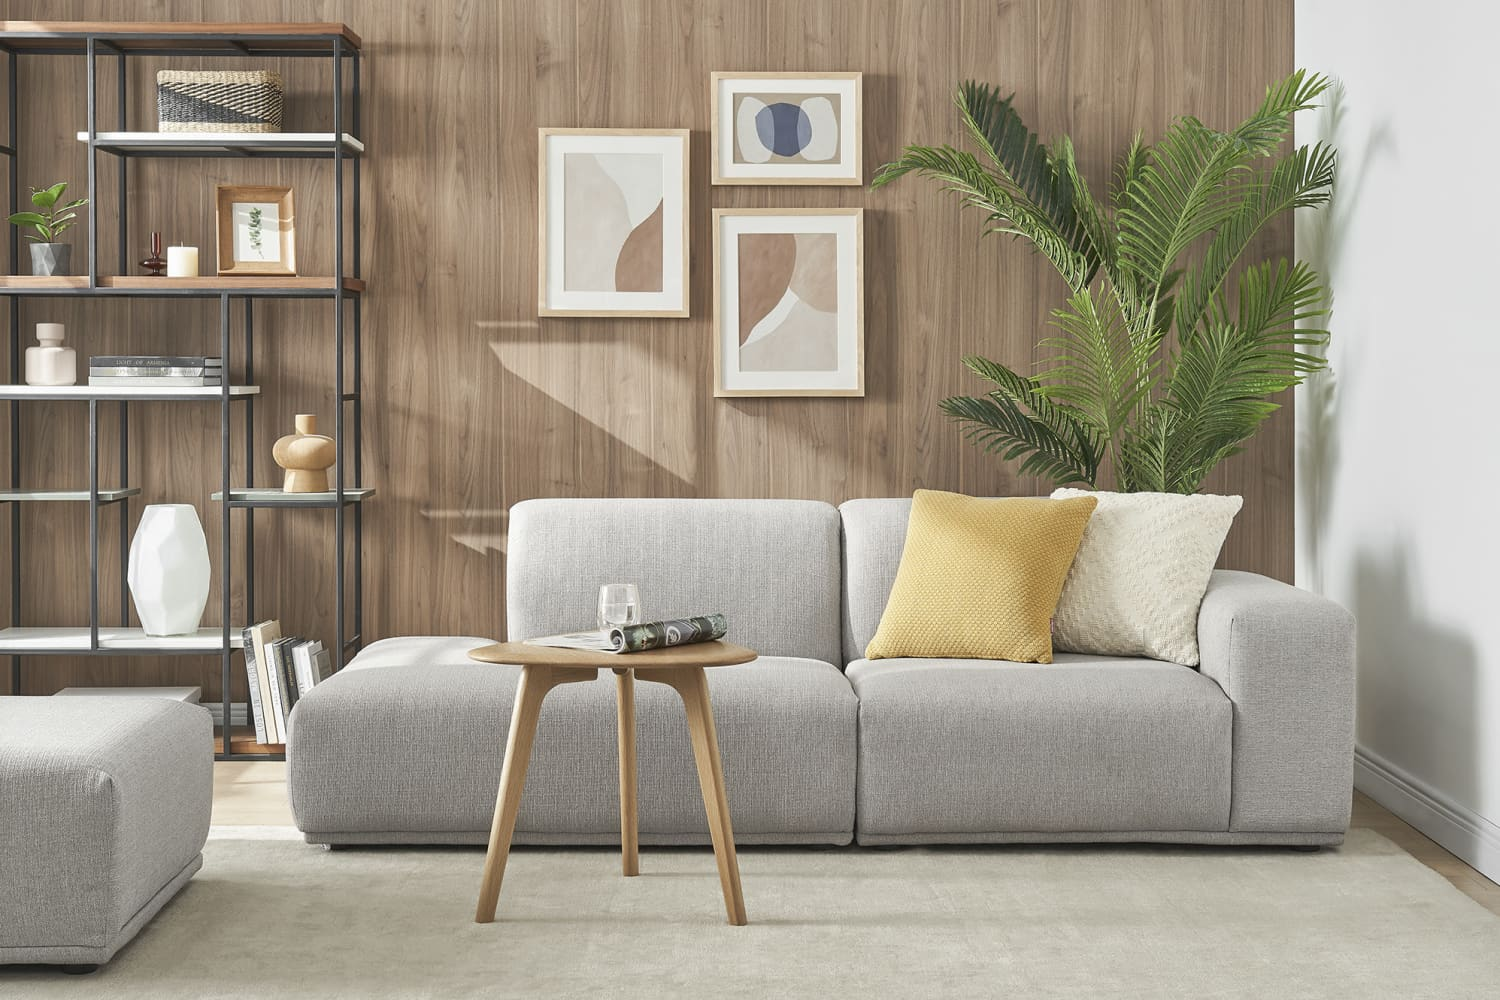 This New DTC Furniture Brand Is Like if West Elm and CB2 Had a Baby